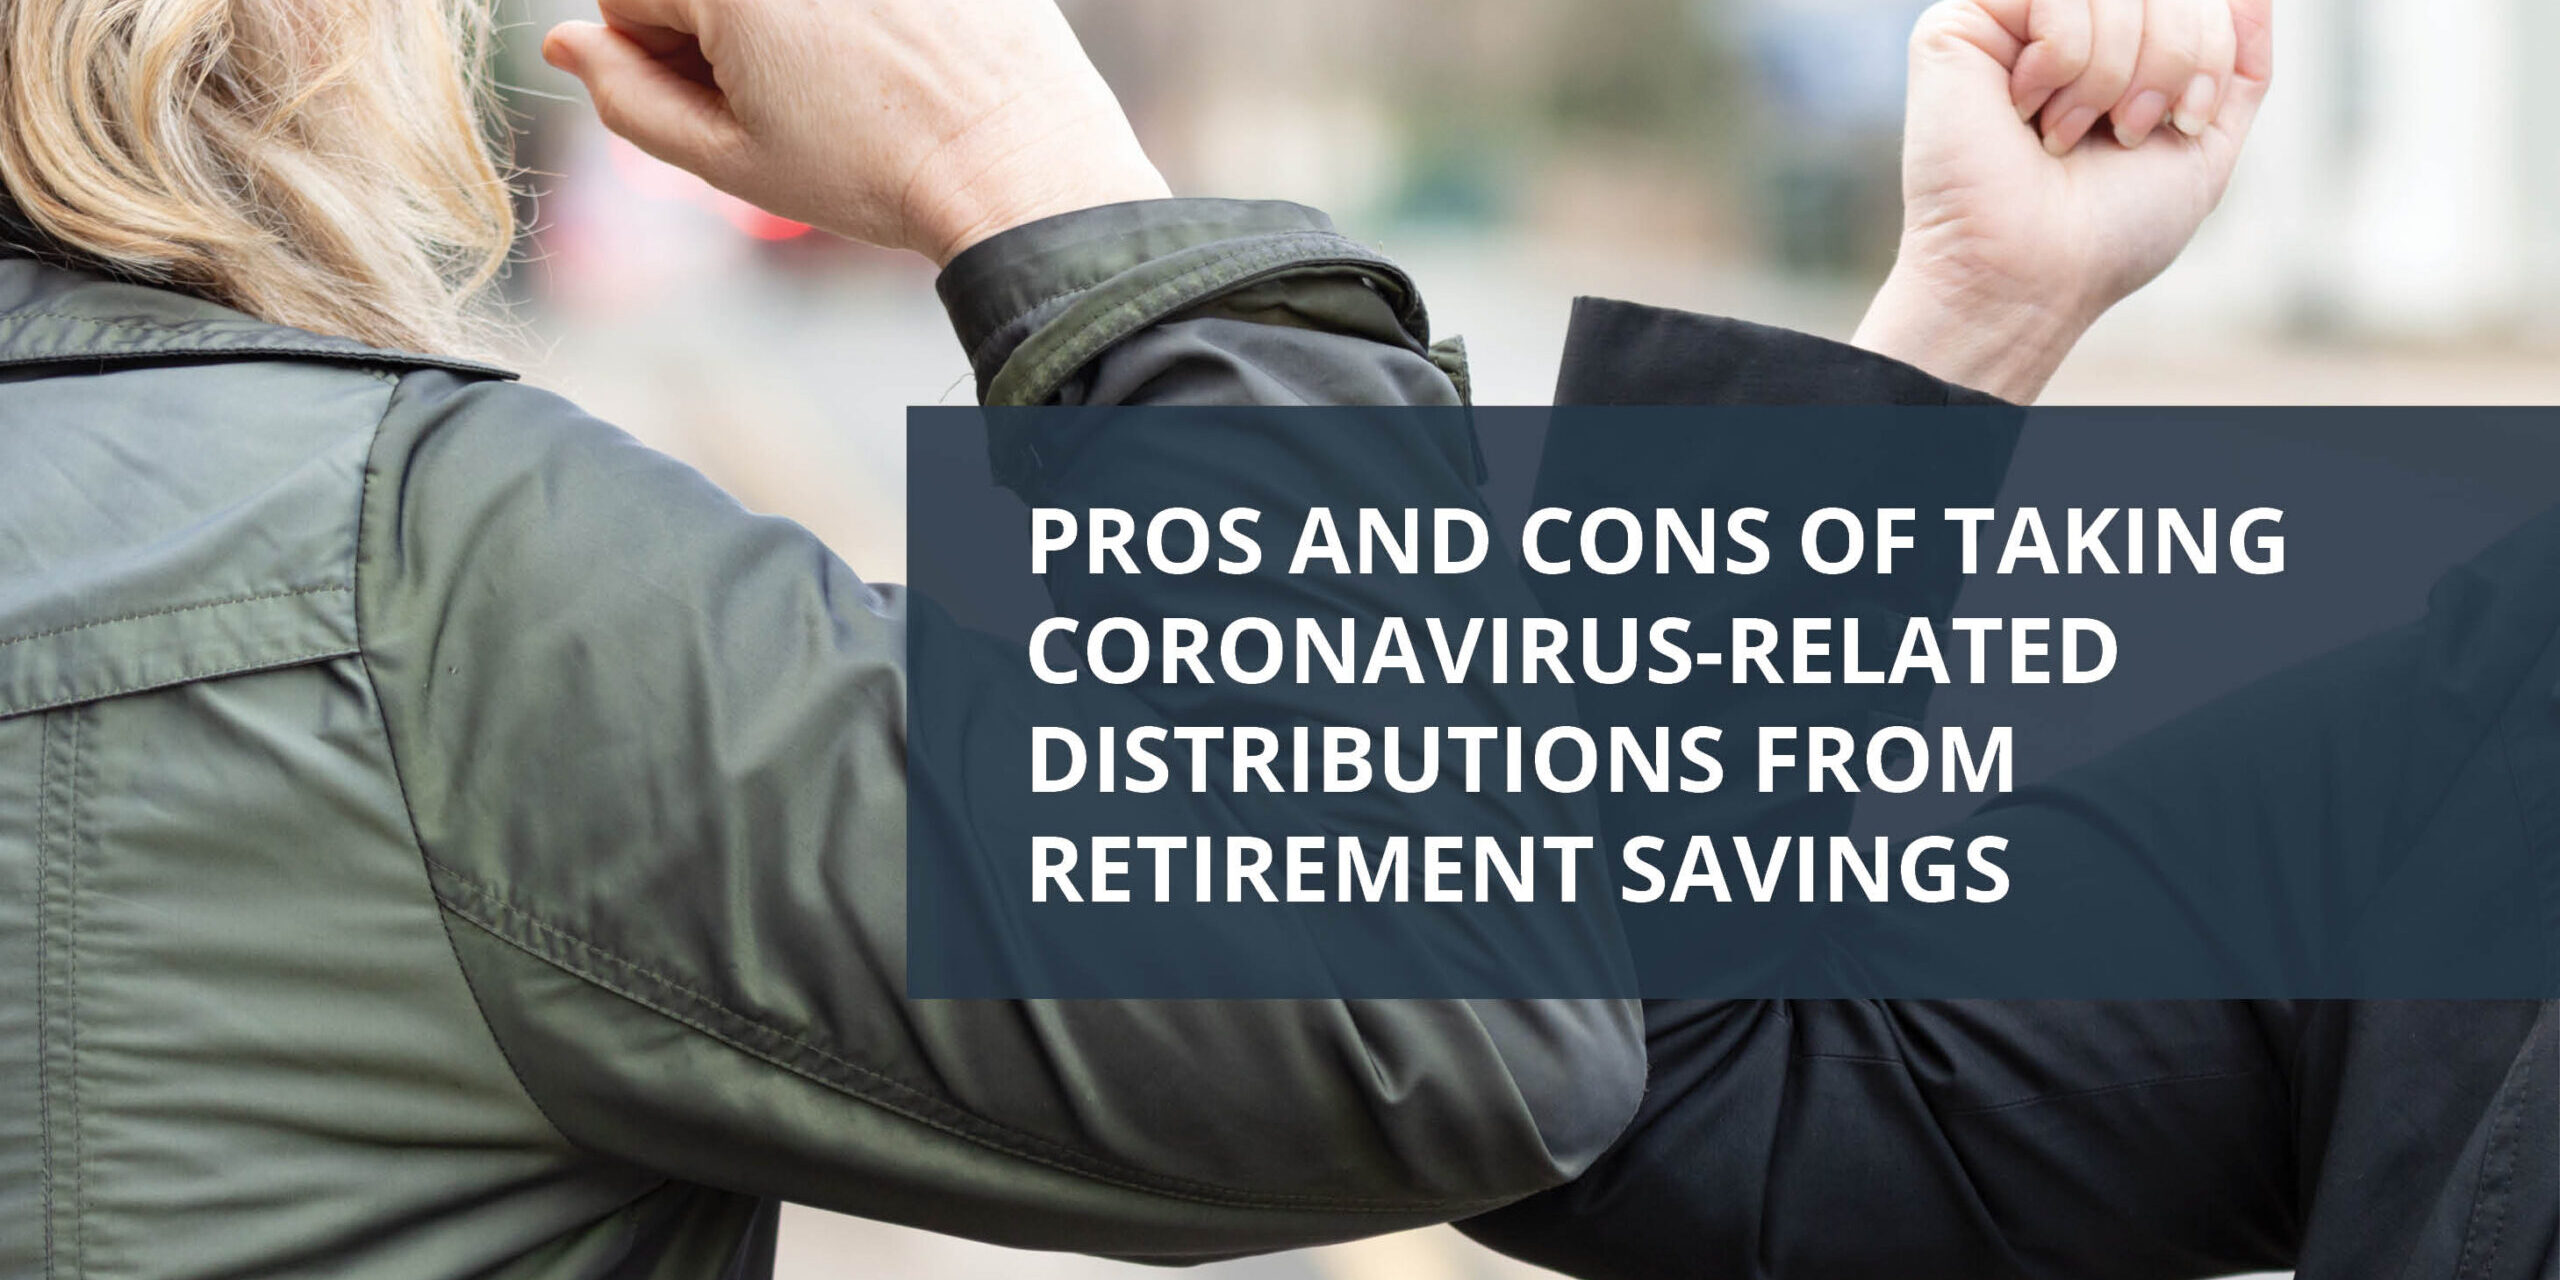 Headline Image 2 - Pros and Cons of Taking Coronavirus-related Distributions from Retirement Savings